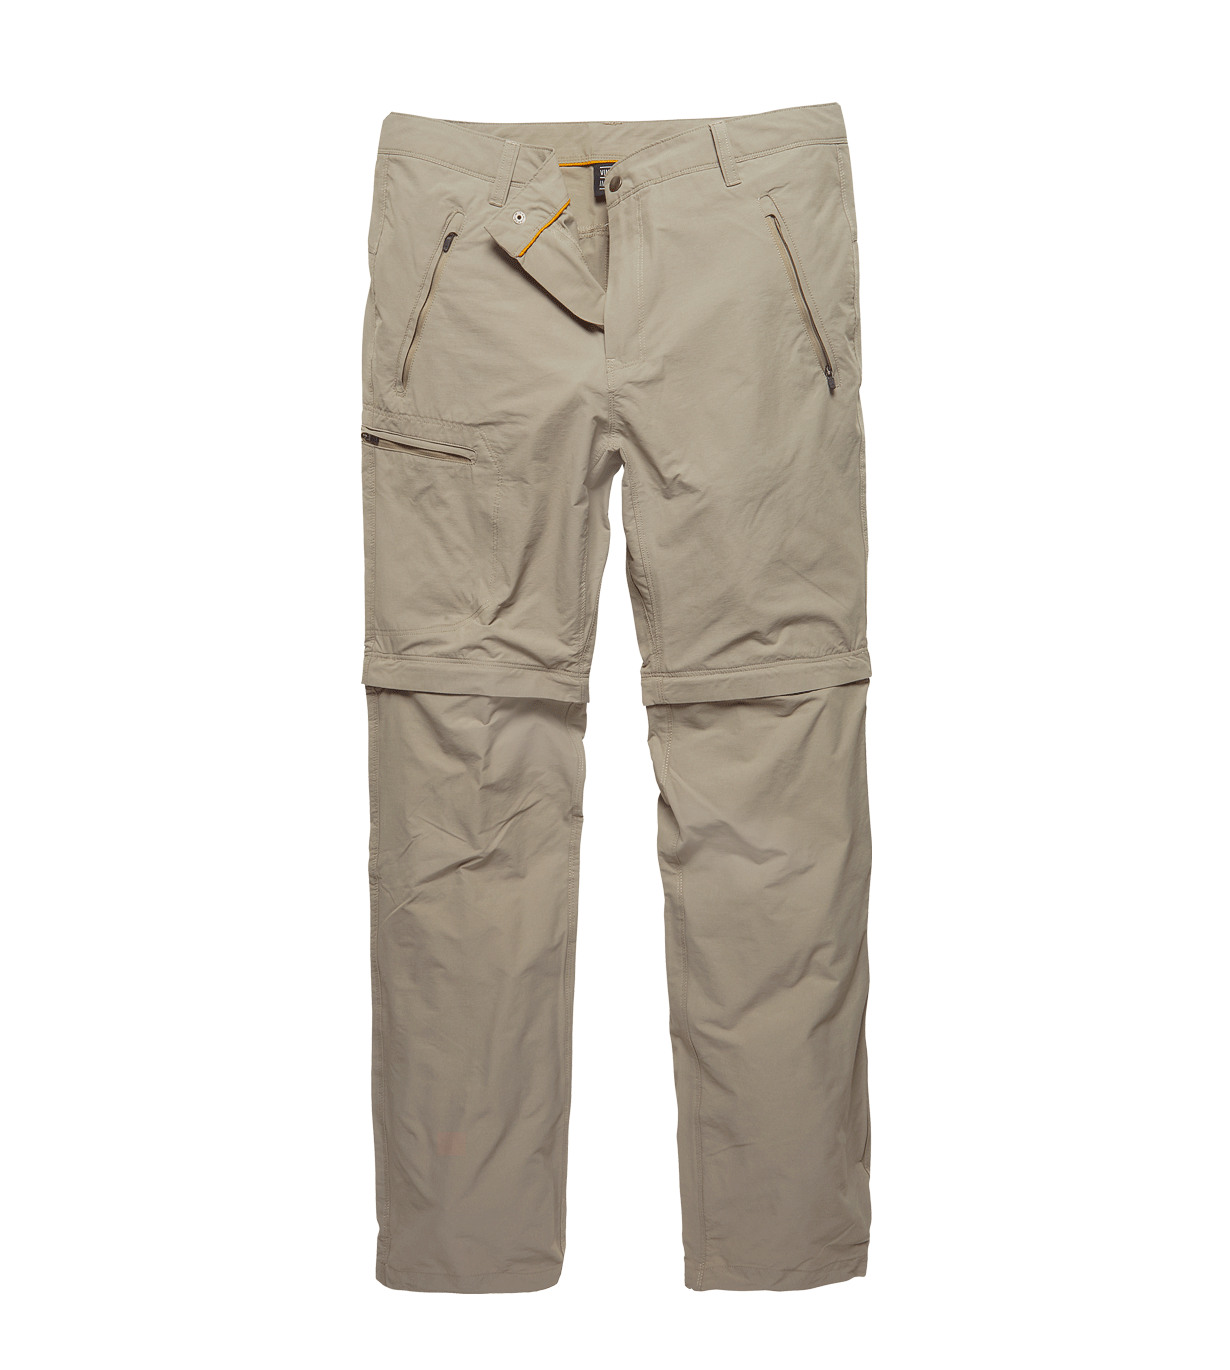 32104 - minford technical zip-off pants